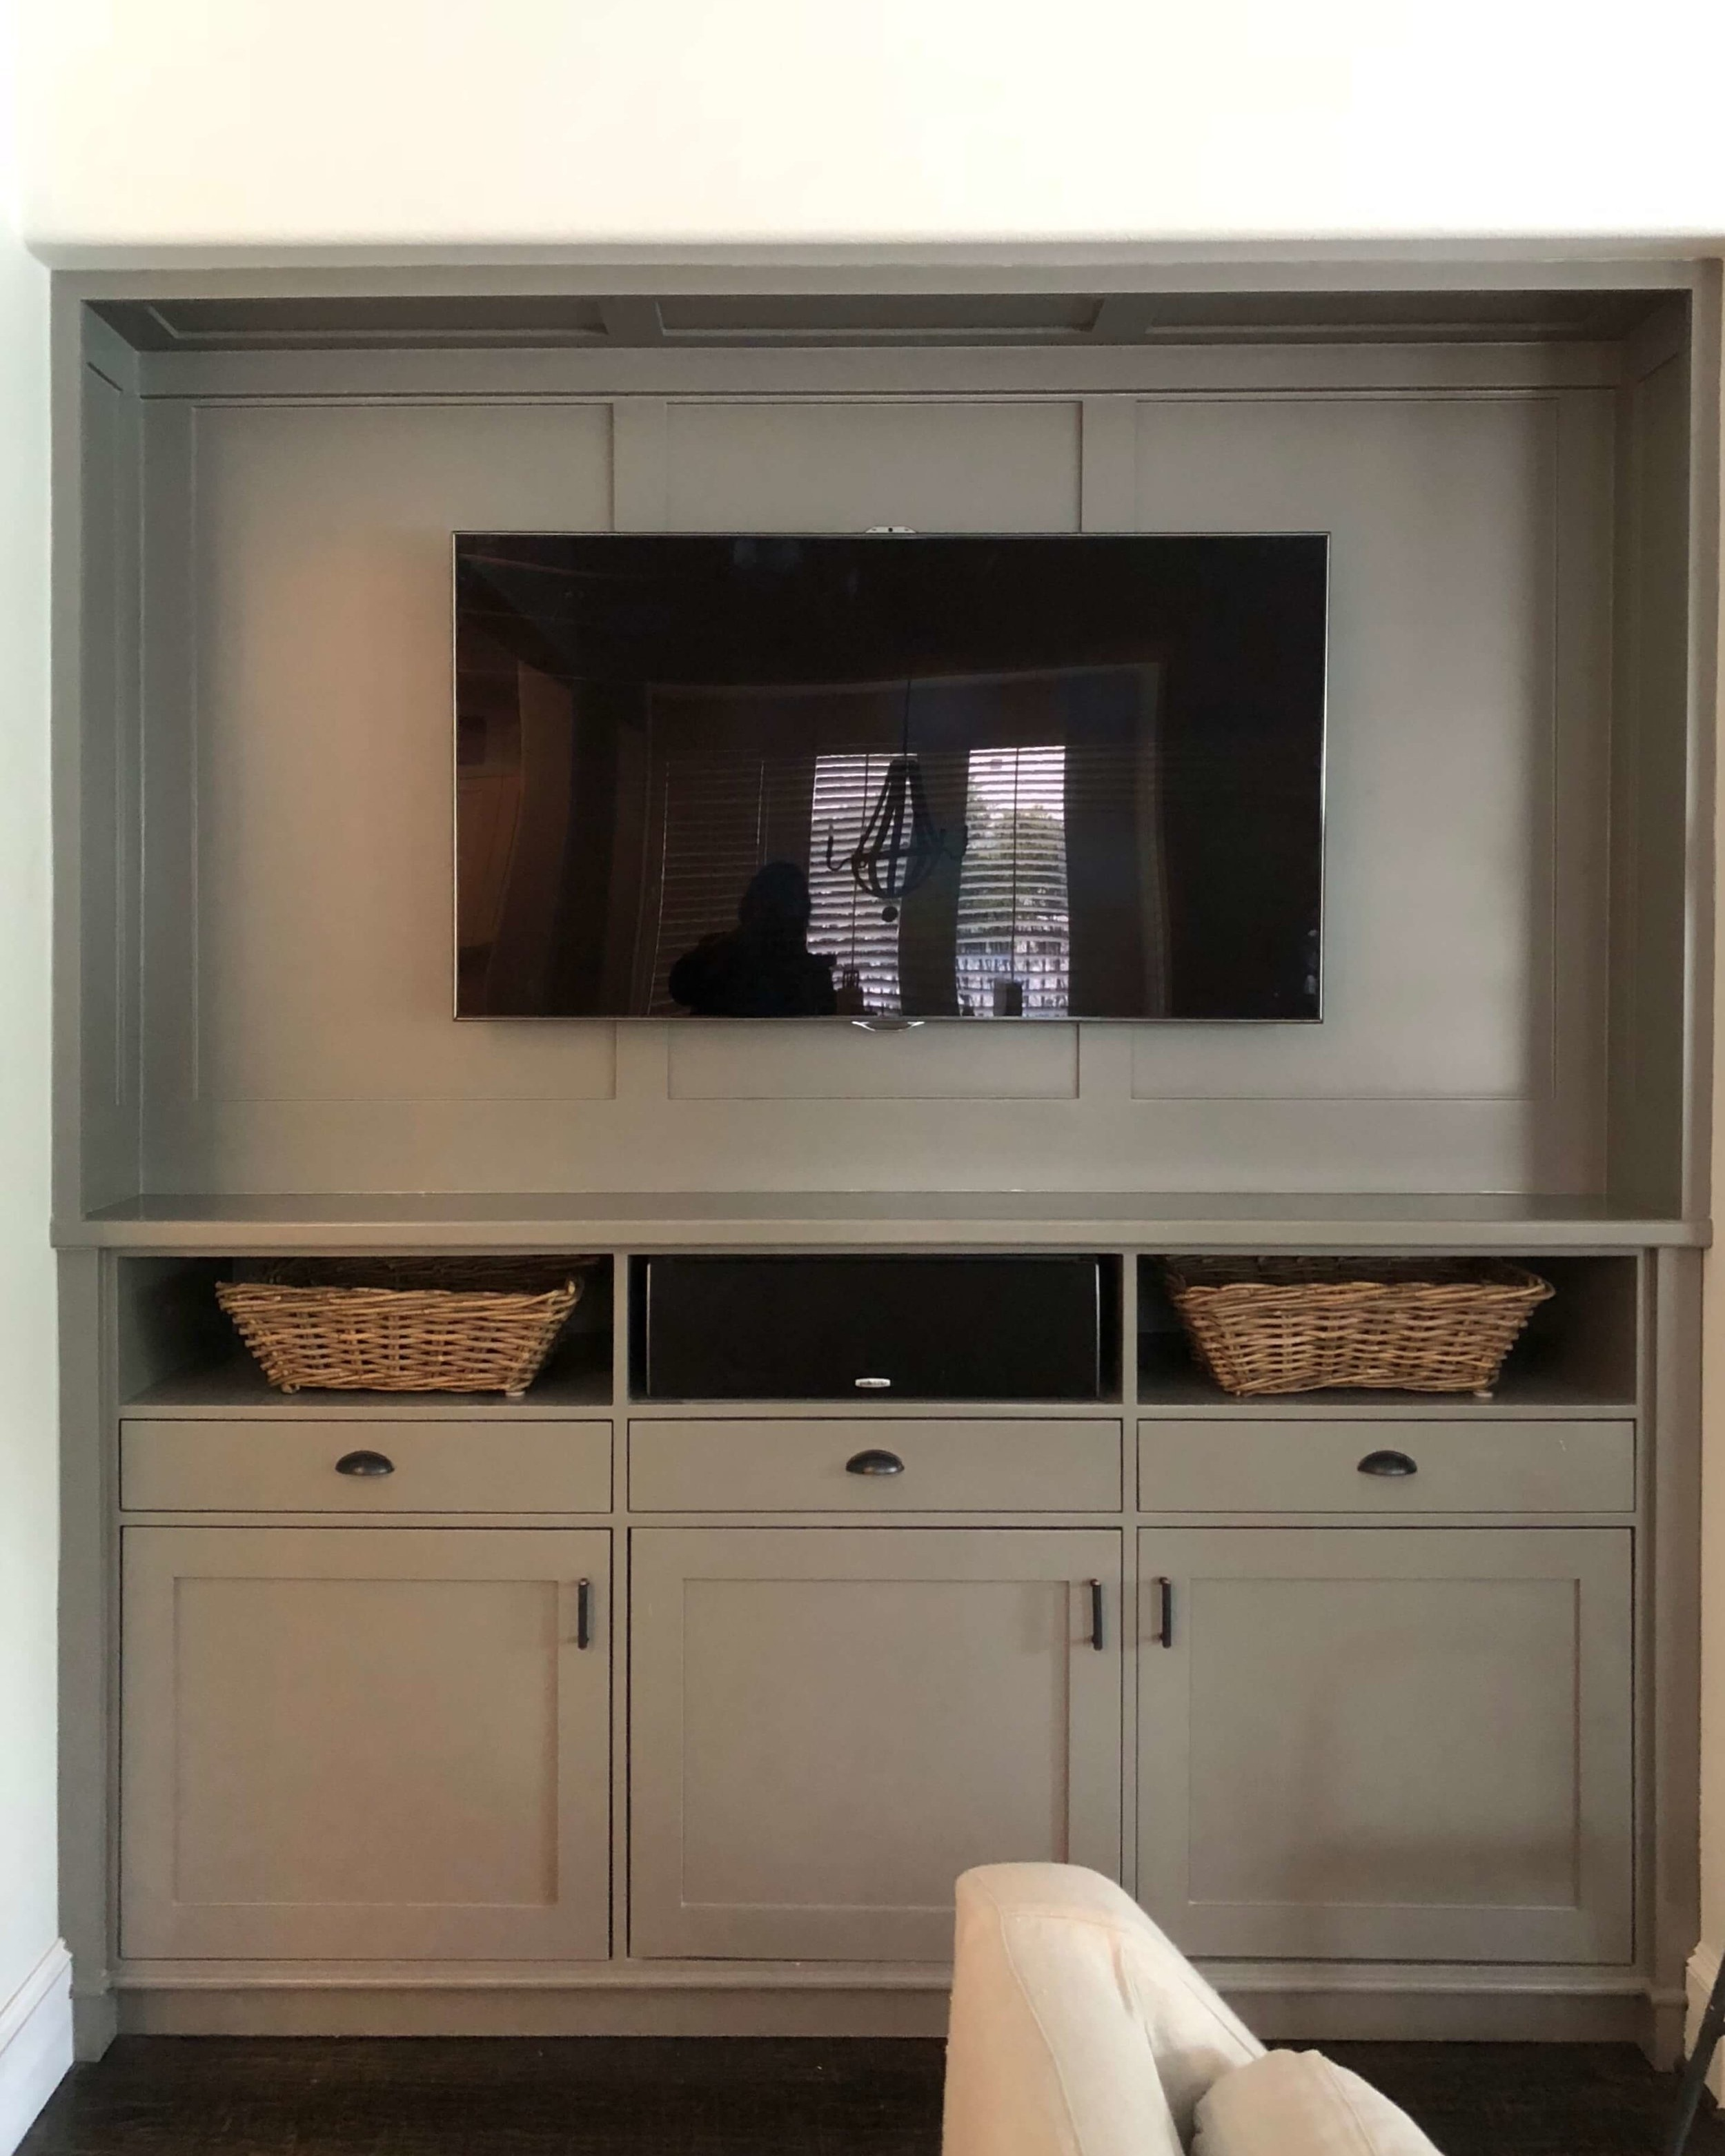 AFTER - The paneled back and sides make for a cleaner, more purposeful look with this flat screen tv cabinet | #tvcabinet